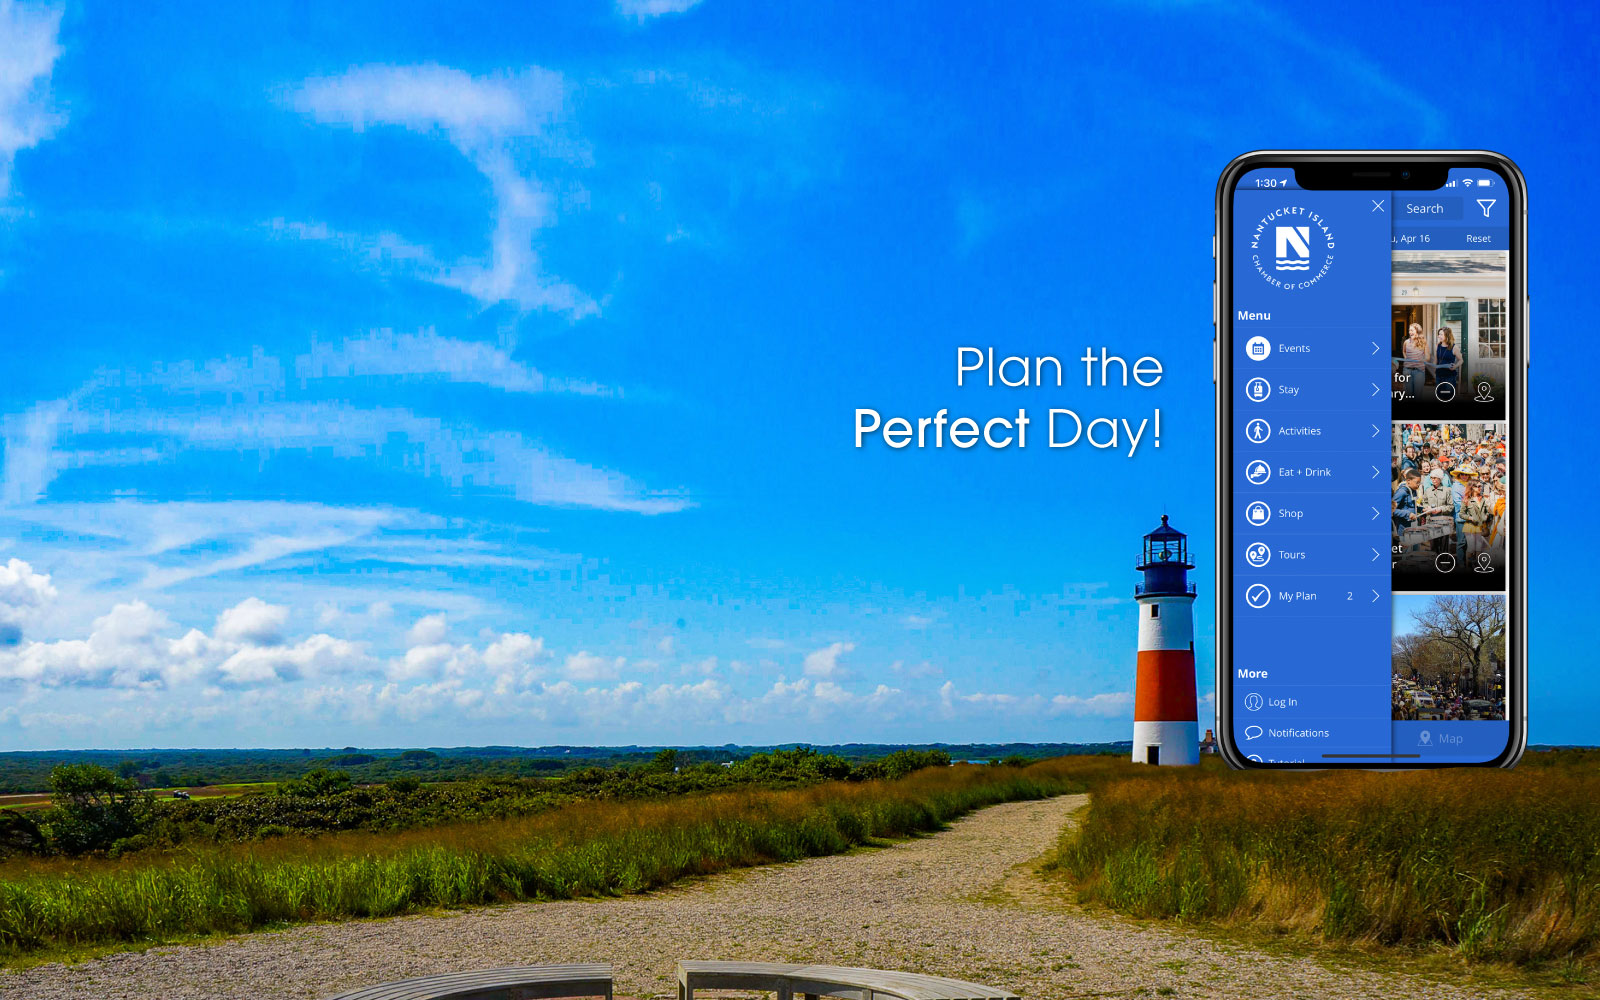 Planning the Perfect Day in Nantucket? Look No Further!